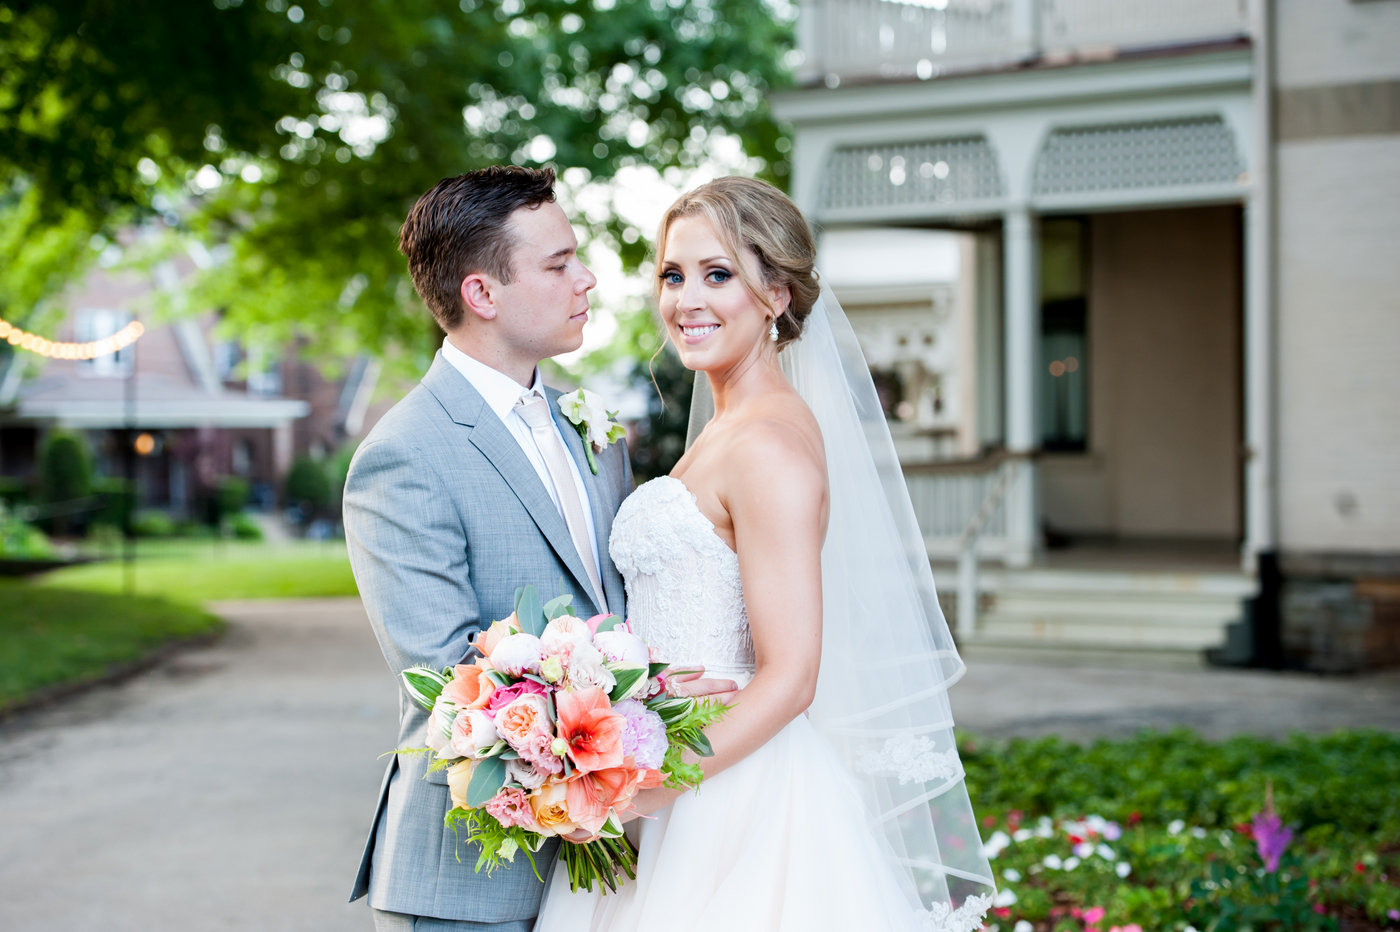 Liz and Paul - Photos by Lynne Goldstein / Planned by Perfectly Planned by Shari